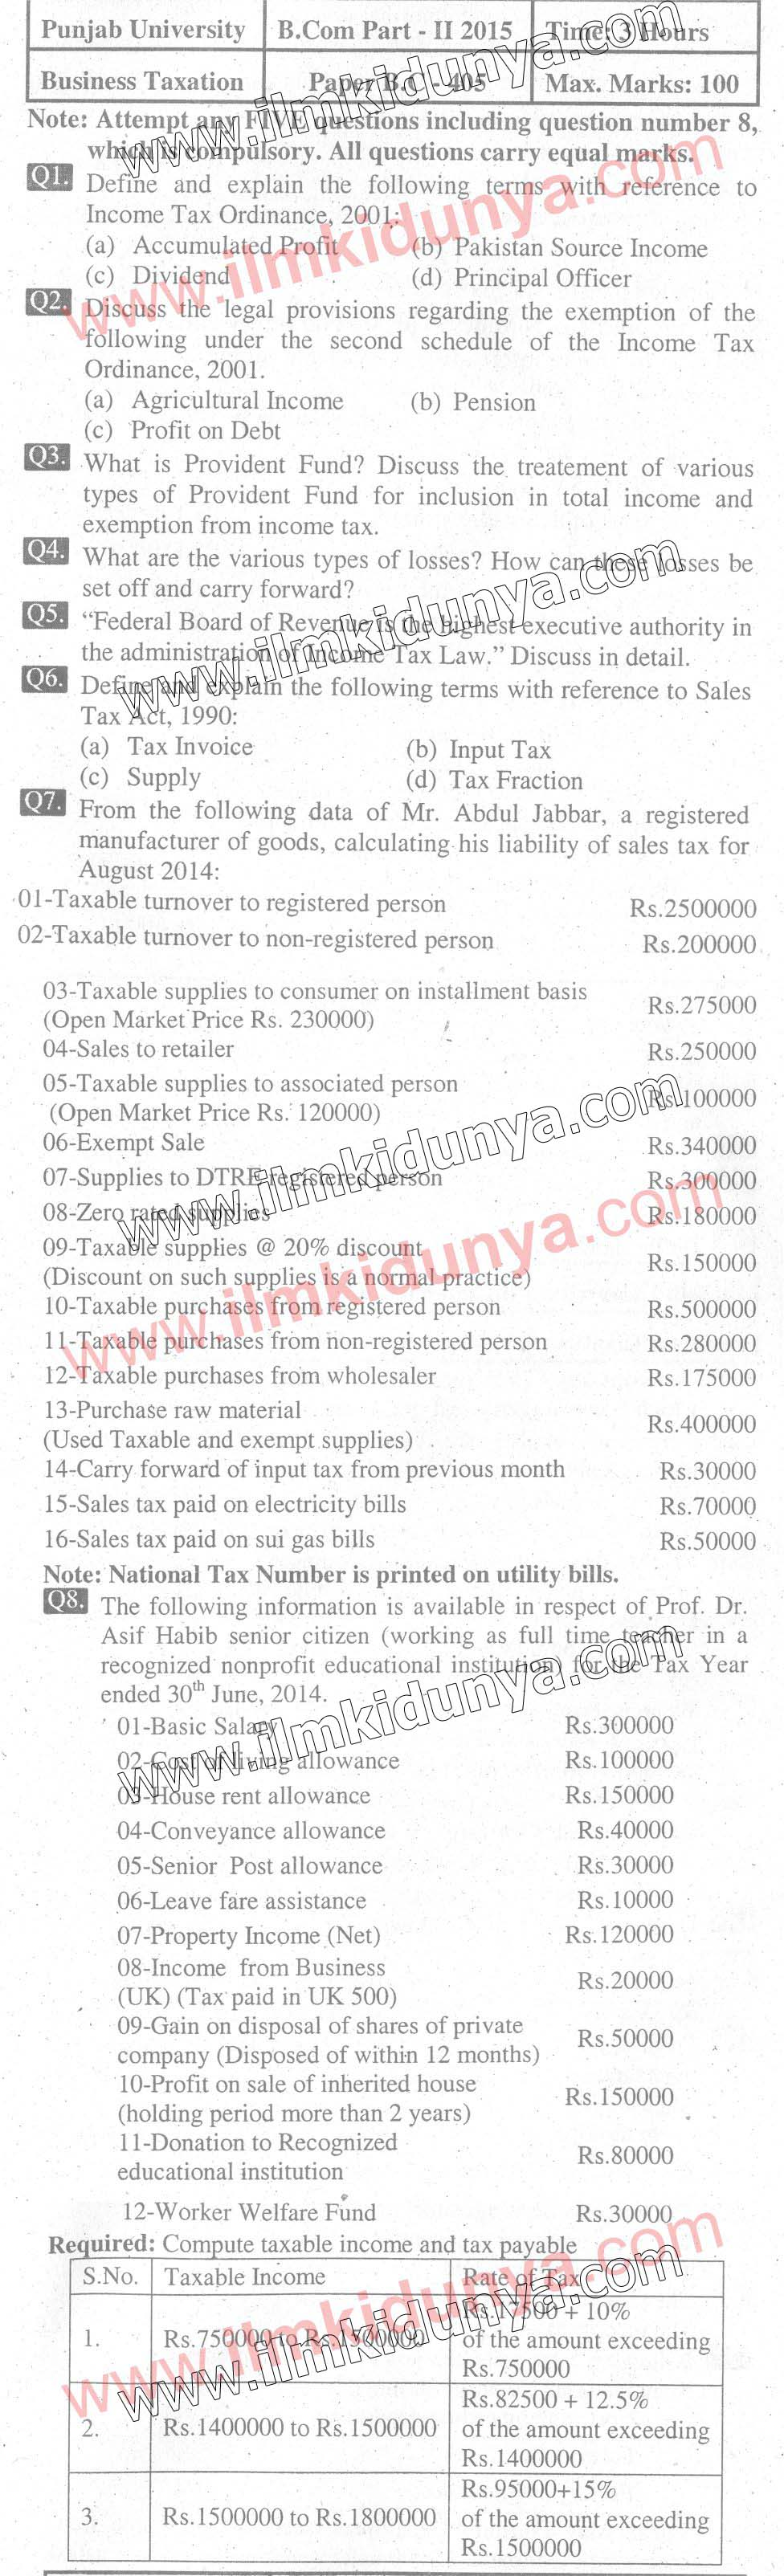 business law past paper 2013 punjab university 2013 bcom part 2 business law punjab university lahore past papers of all previous years are uploaded here students can download pu lahore bcom part 2 past papers online here.